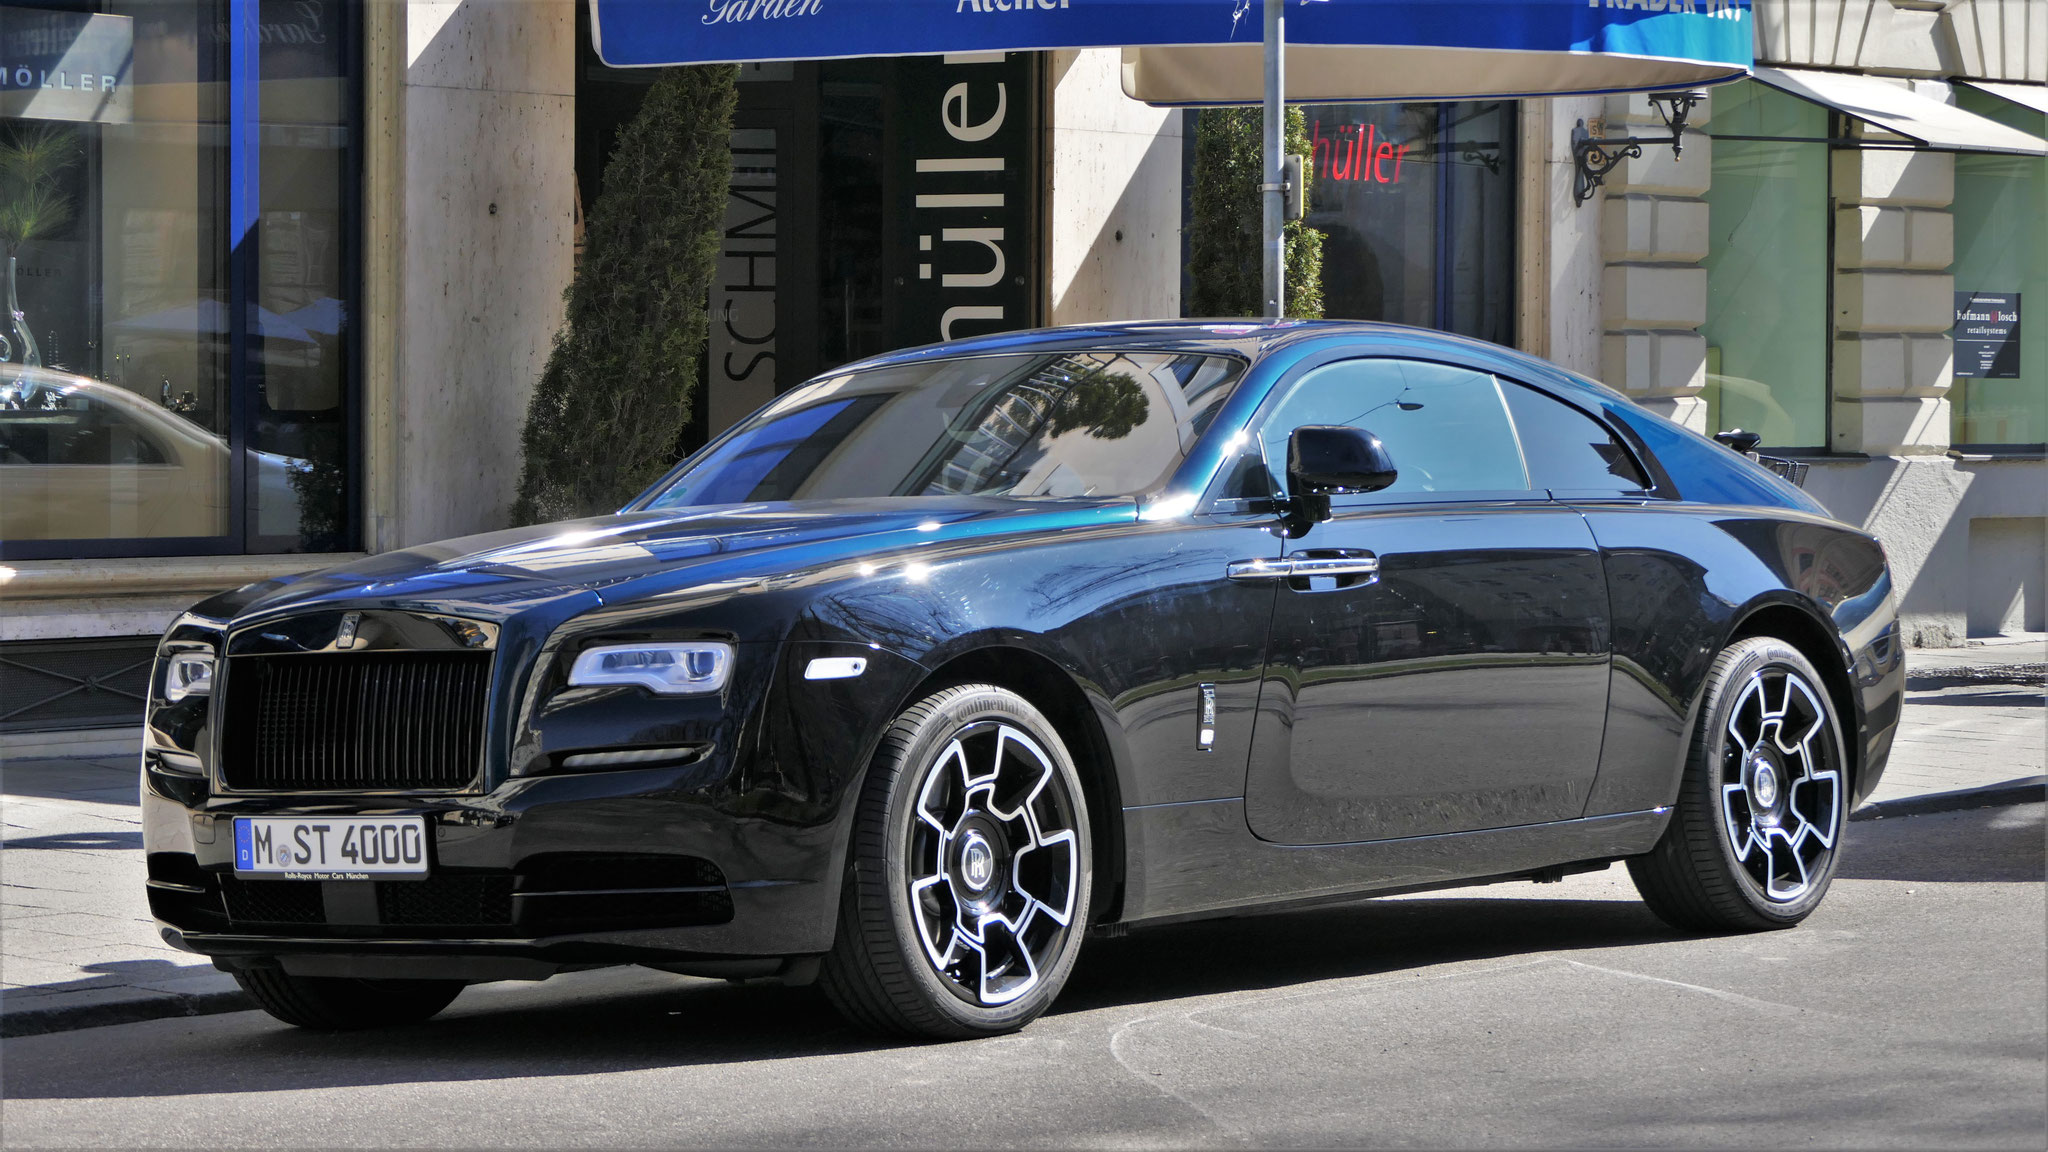 Rolls Royce Wraith Black Badge - M-ST-4000